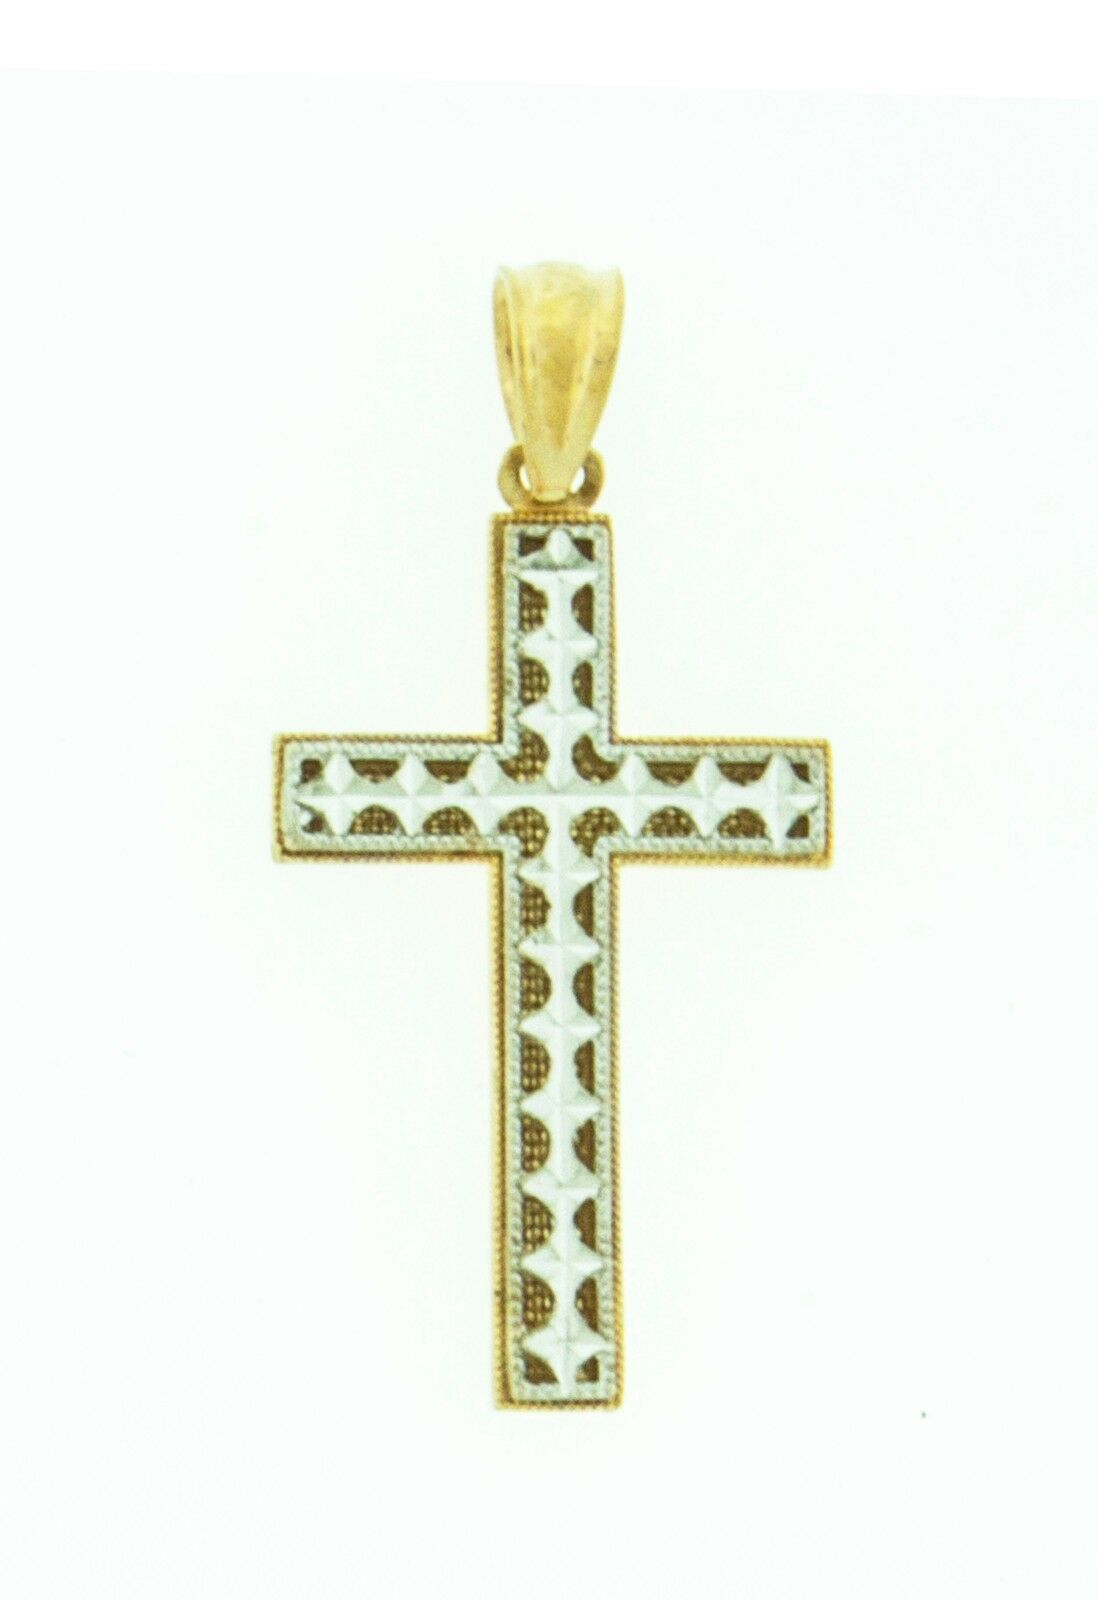 Solid 14k Two Tone gold Cross Jesus Religious Two Sided Pendant Charm 1.1